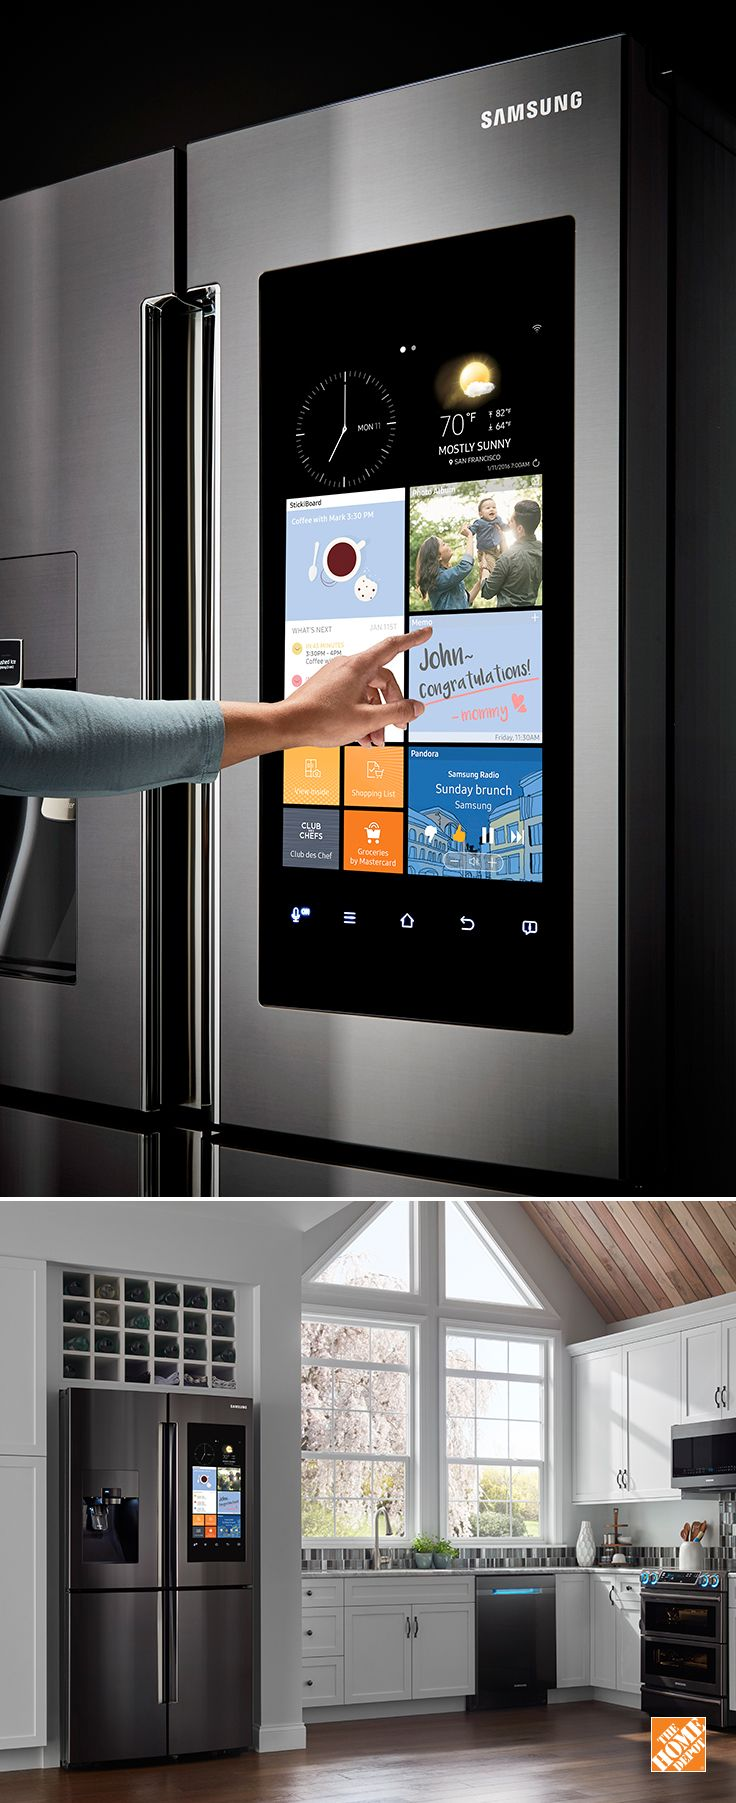 "Make the kitchen the center of your home. Samsung's Family Hub™ Refrigerator helps you manage your home and your life, with 3 Built-in cameras for food management, plus direct grocery ordering, share multiple calendars, photos and notes and Stream music, videos, mirror your TV – all controlled from a 21.5"" Wi-Fi enabled touchscreen on a beautiful 4-door refrigerator."